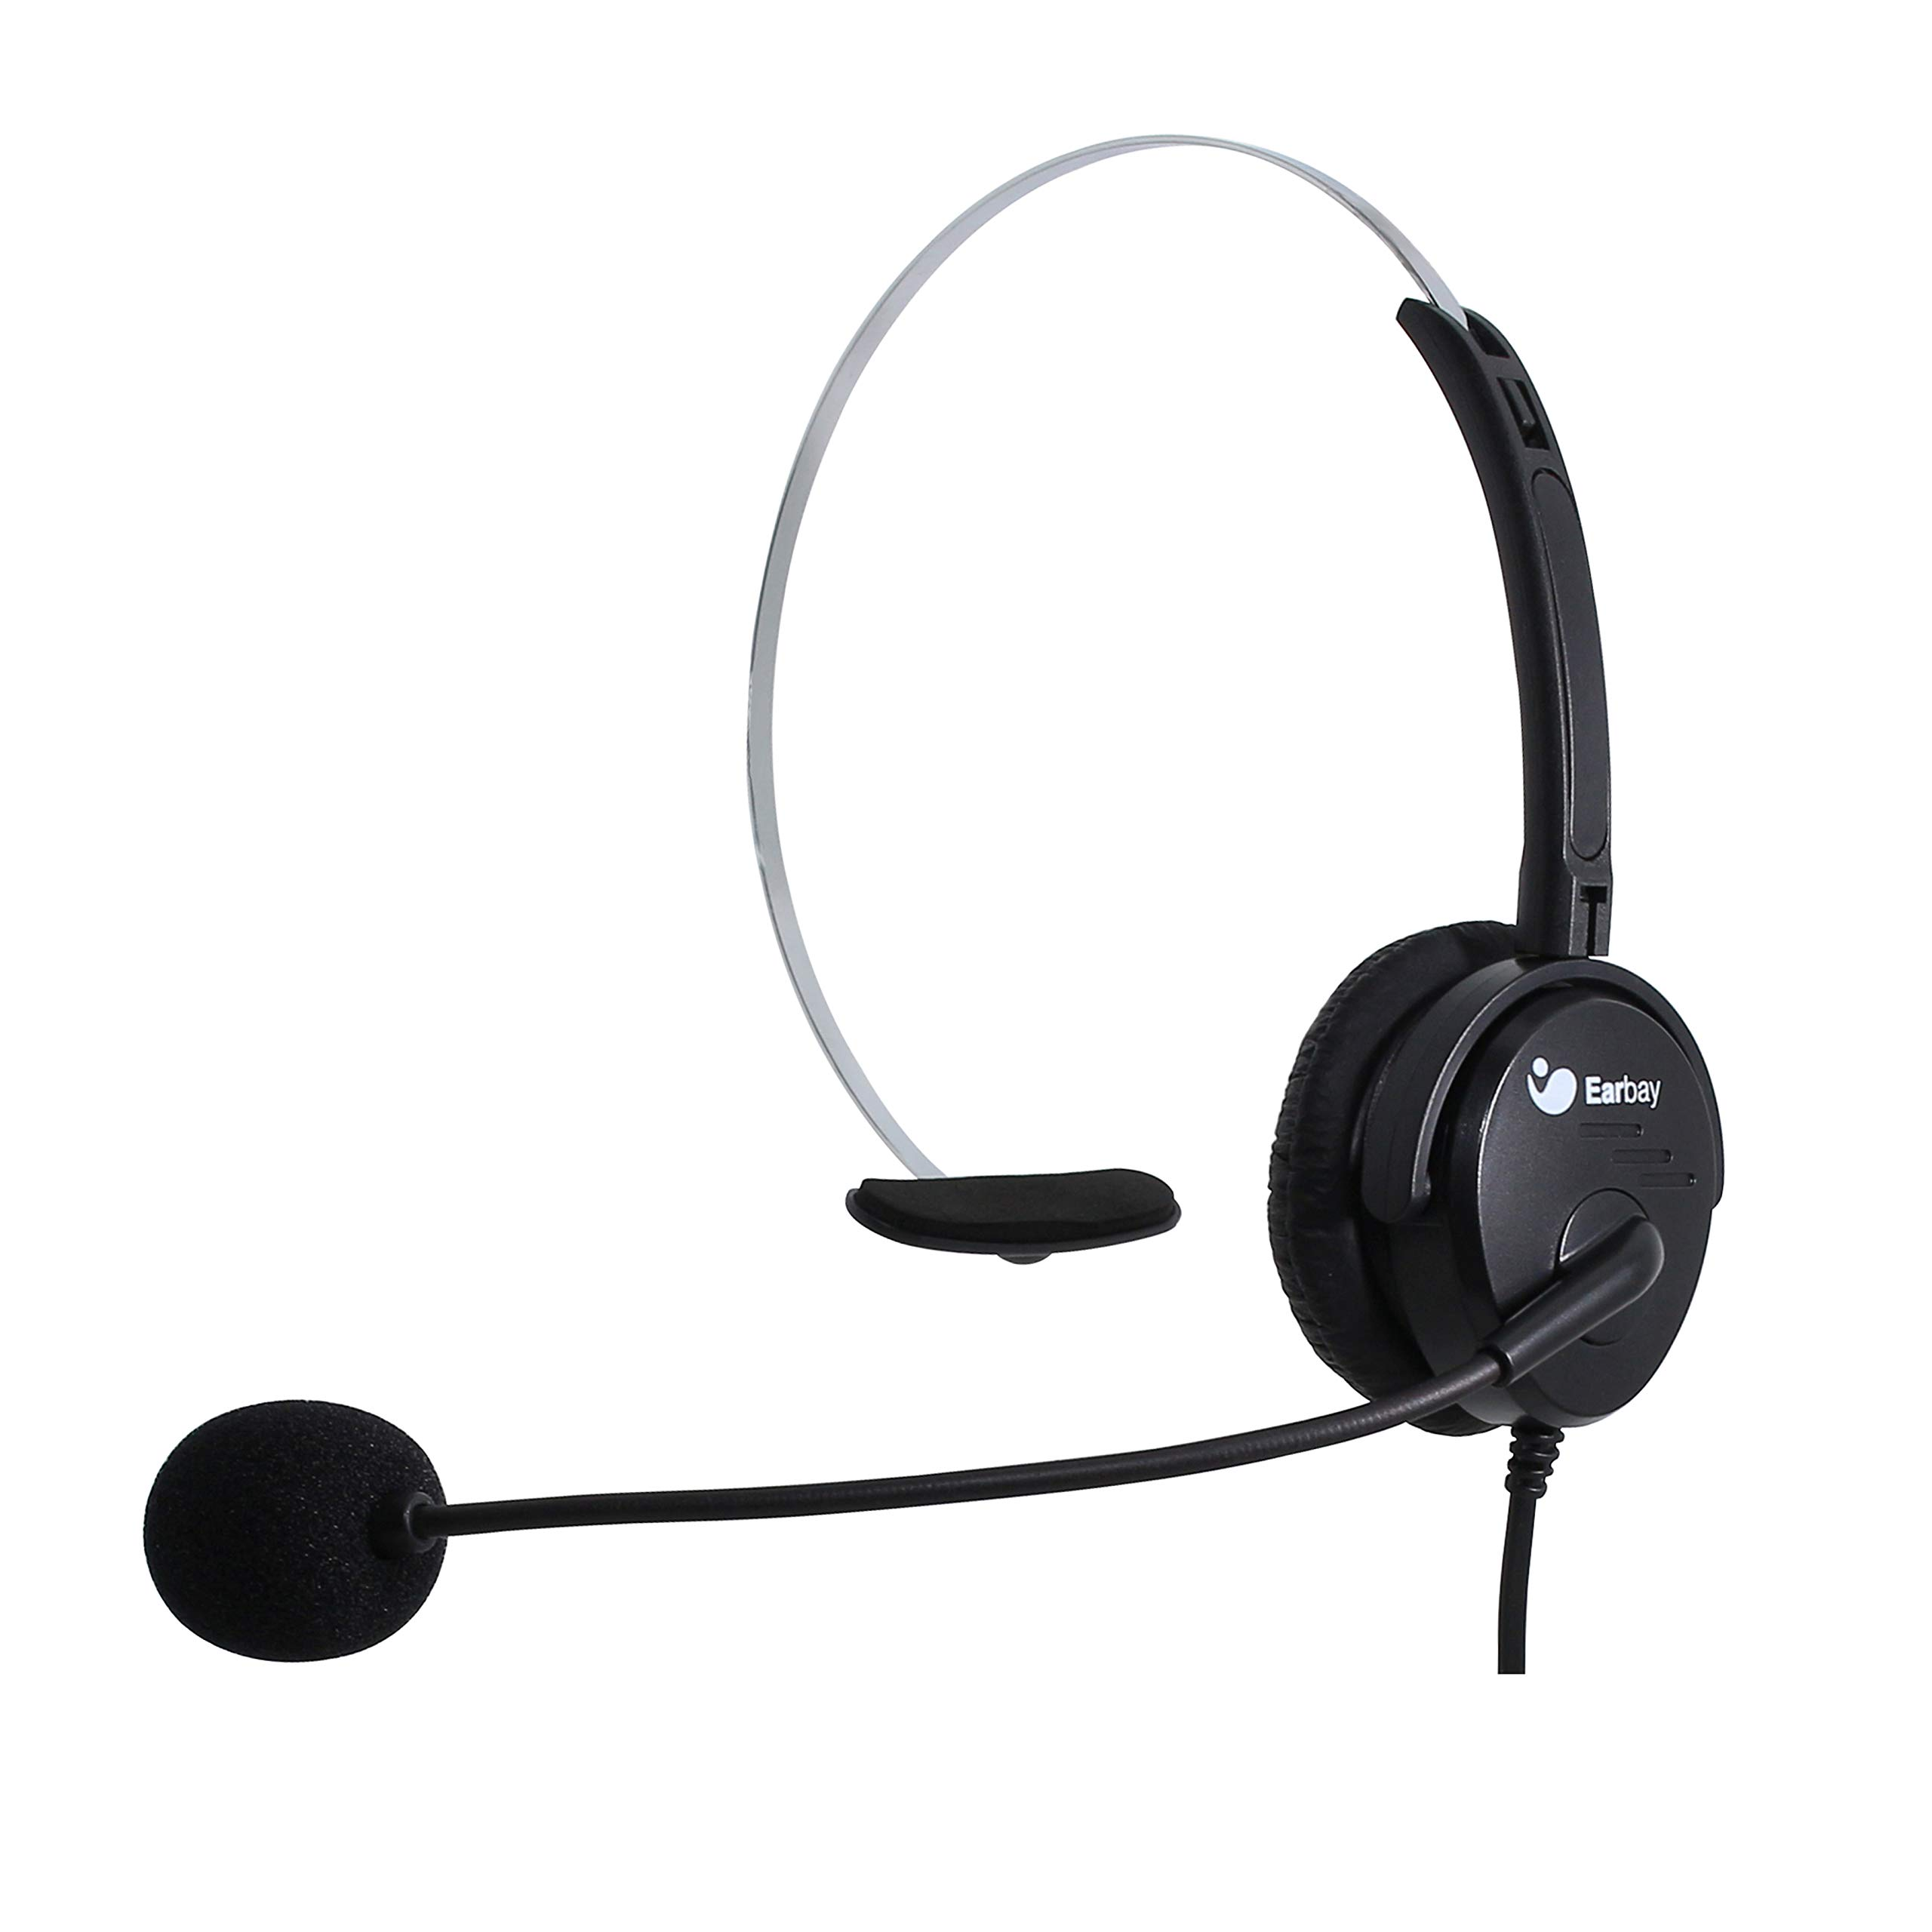 Earbay USB Headset with Noise Cancelling Microphone and Volume Control for Call Center